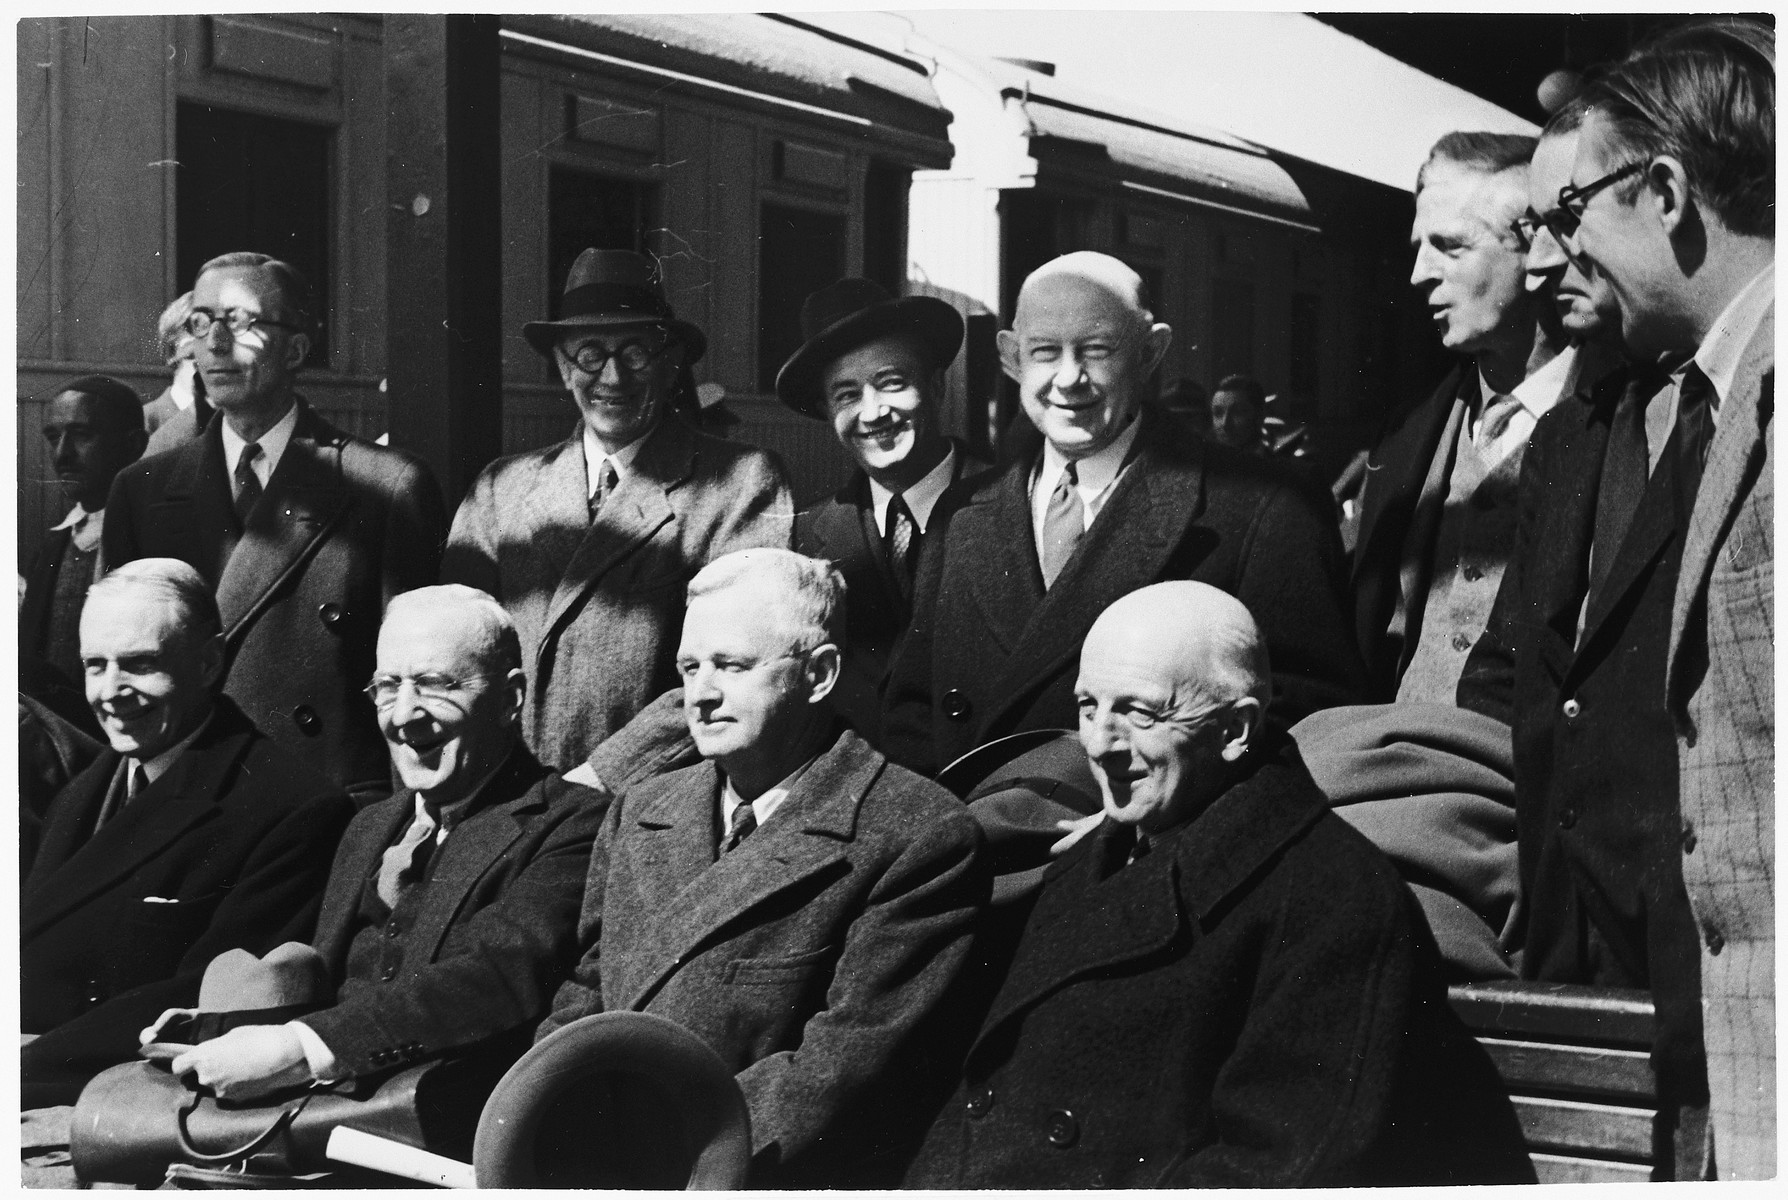 Group portrait of members of the Anglo-American Committee of Inquiry on Palestine after their arrival at the train station in Jerusalem.  Pictured seated from right to left are: Judge Joseph Hutcheson (American chairman), Frank Singleton (British chairman), Frank Buxton (U.S.), and William Phillips (U.S.).  Standing from right to left are: R.H.S. Crossman (UK), R.E. Manningham-Buller (UK), James G. McDonald (U.S.), Frank Aydelotte (U.S.), Bartley Crum (U.S.), Sir Frederick Leggett (UK), and W.F. Crick (UK).  The twelfth member of the committee was Lord Morrison (UK).